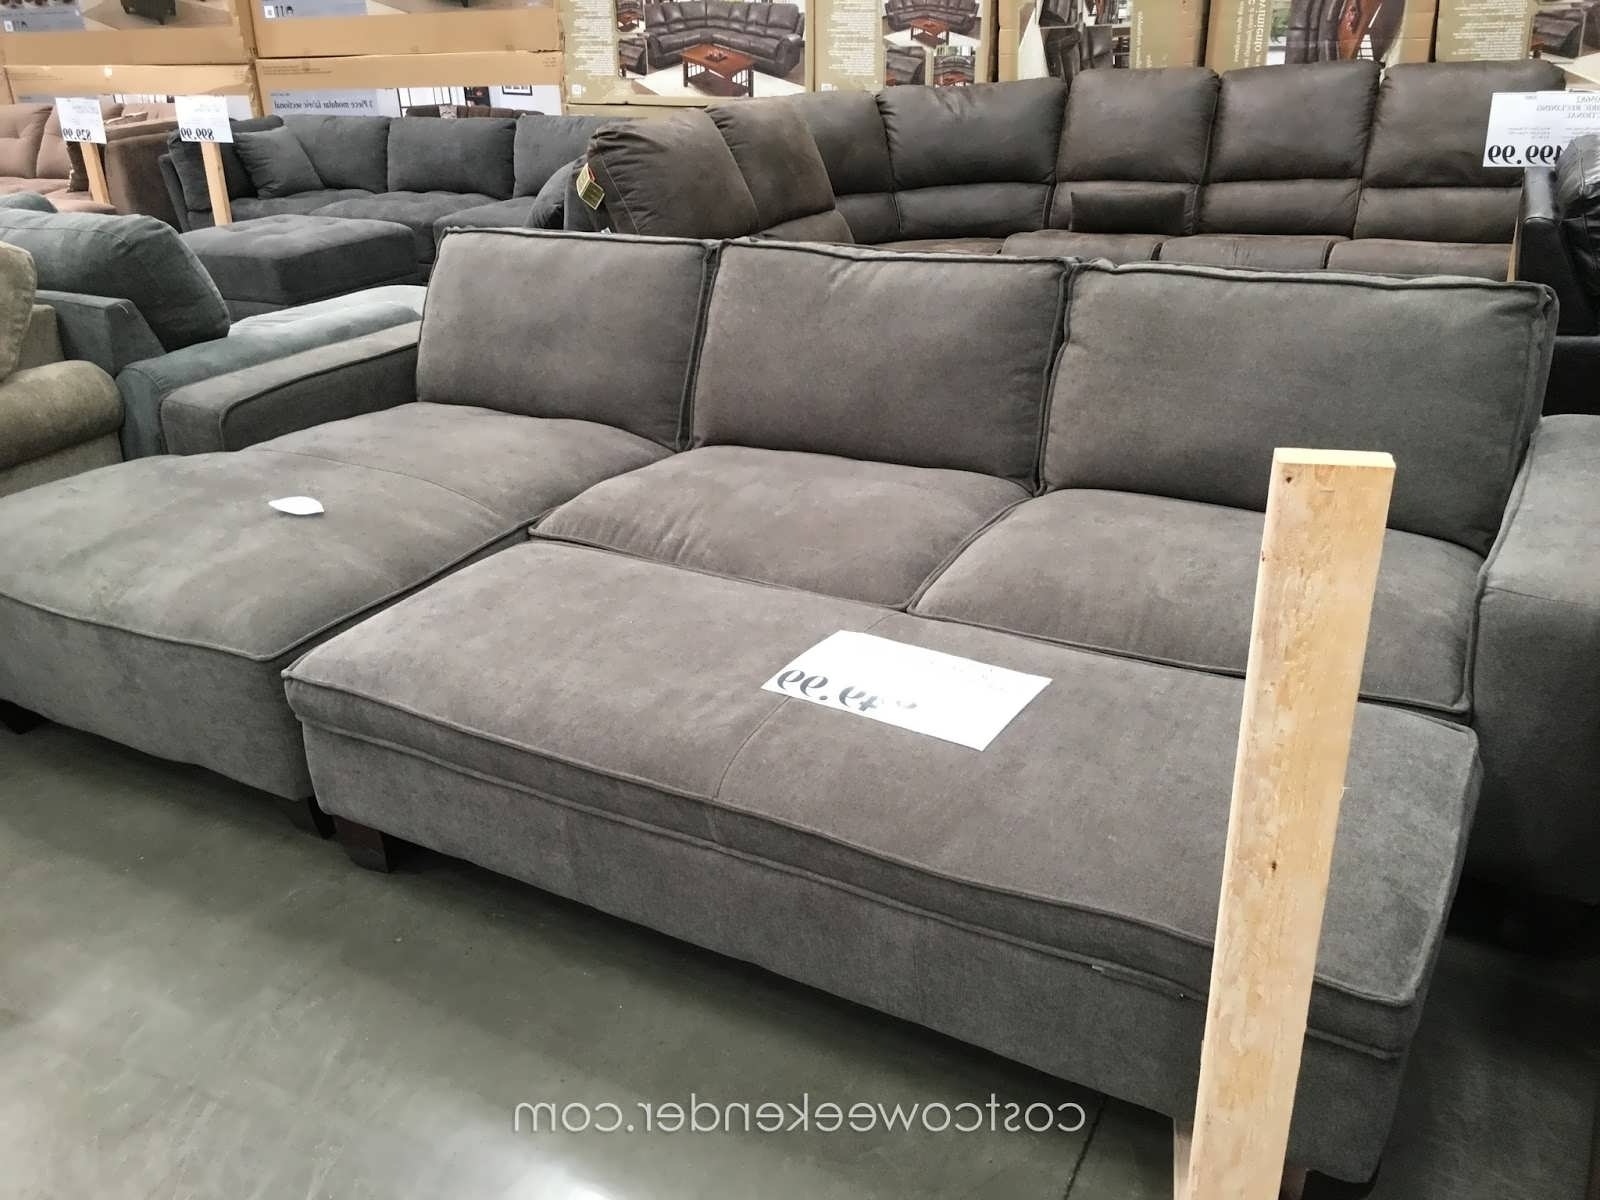 Most Recently Released Deep Sectional Sofas With Chaise With Sofa : L Sofa Modular Sectional Sofa Couch With Chaise Sectional (View 10 of 15)